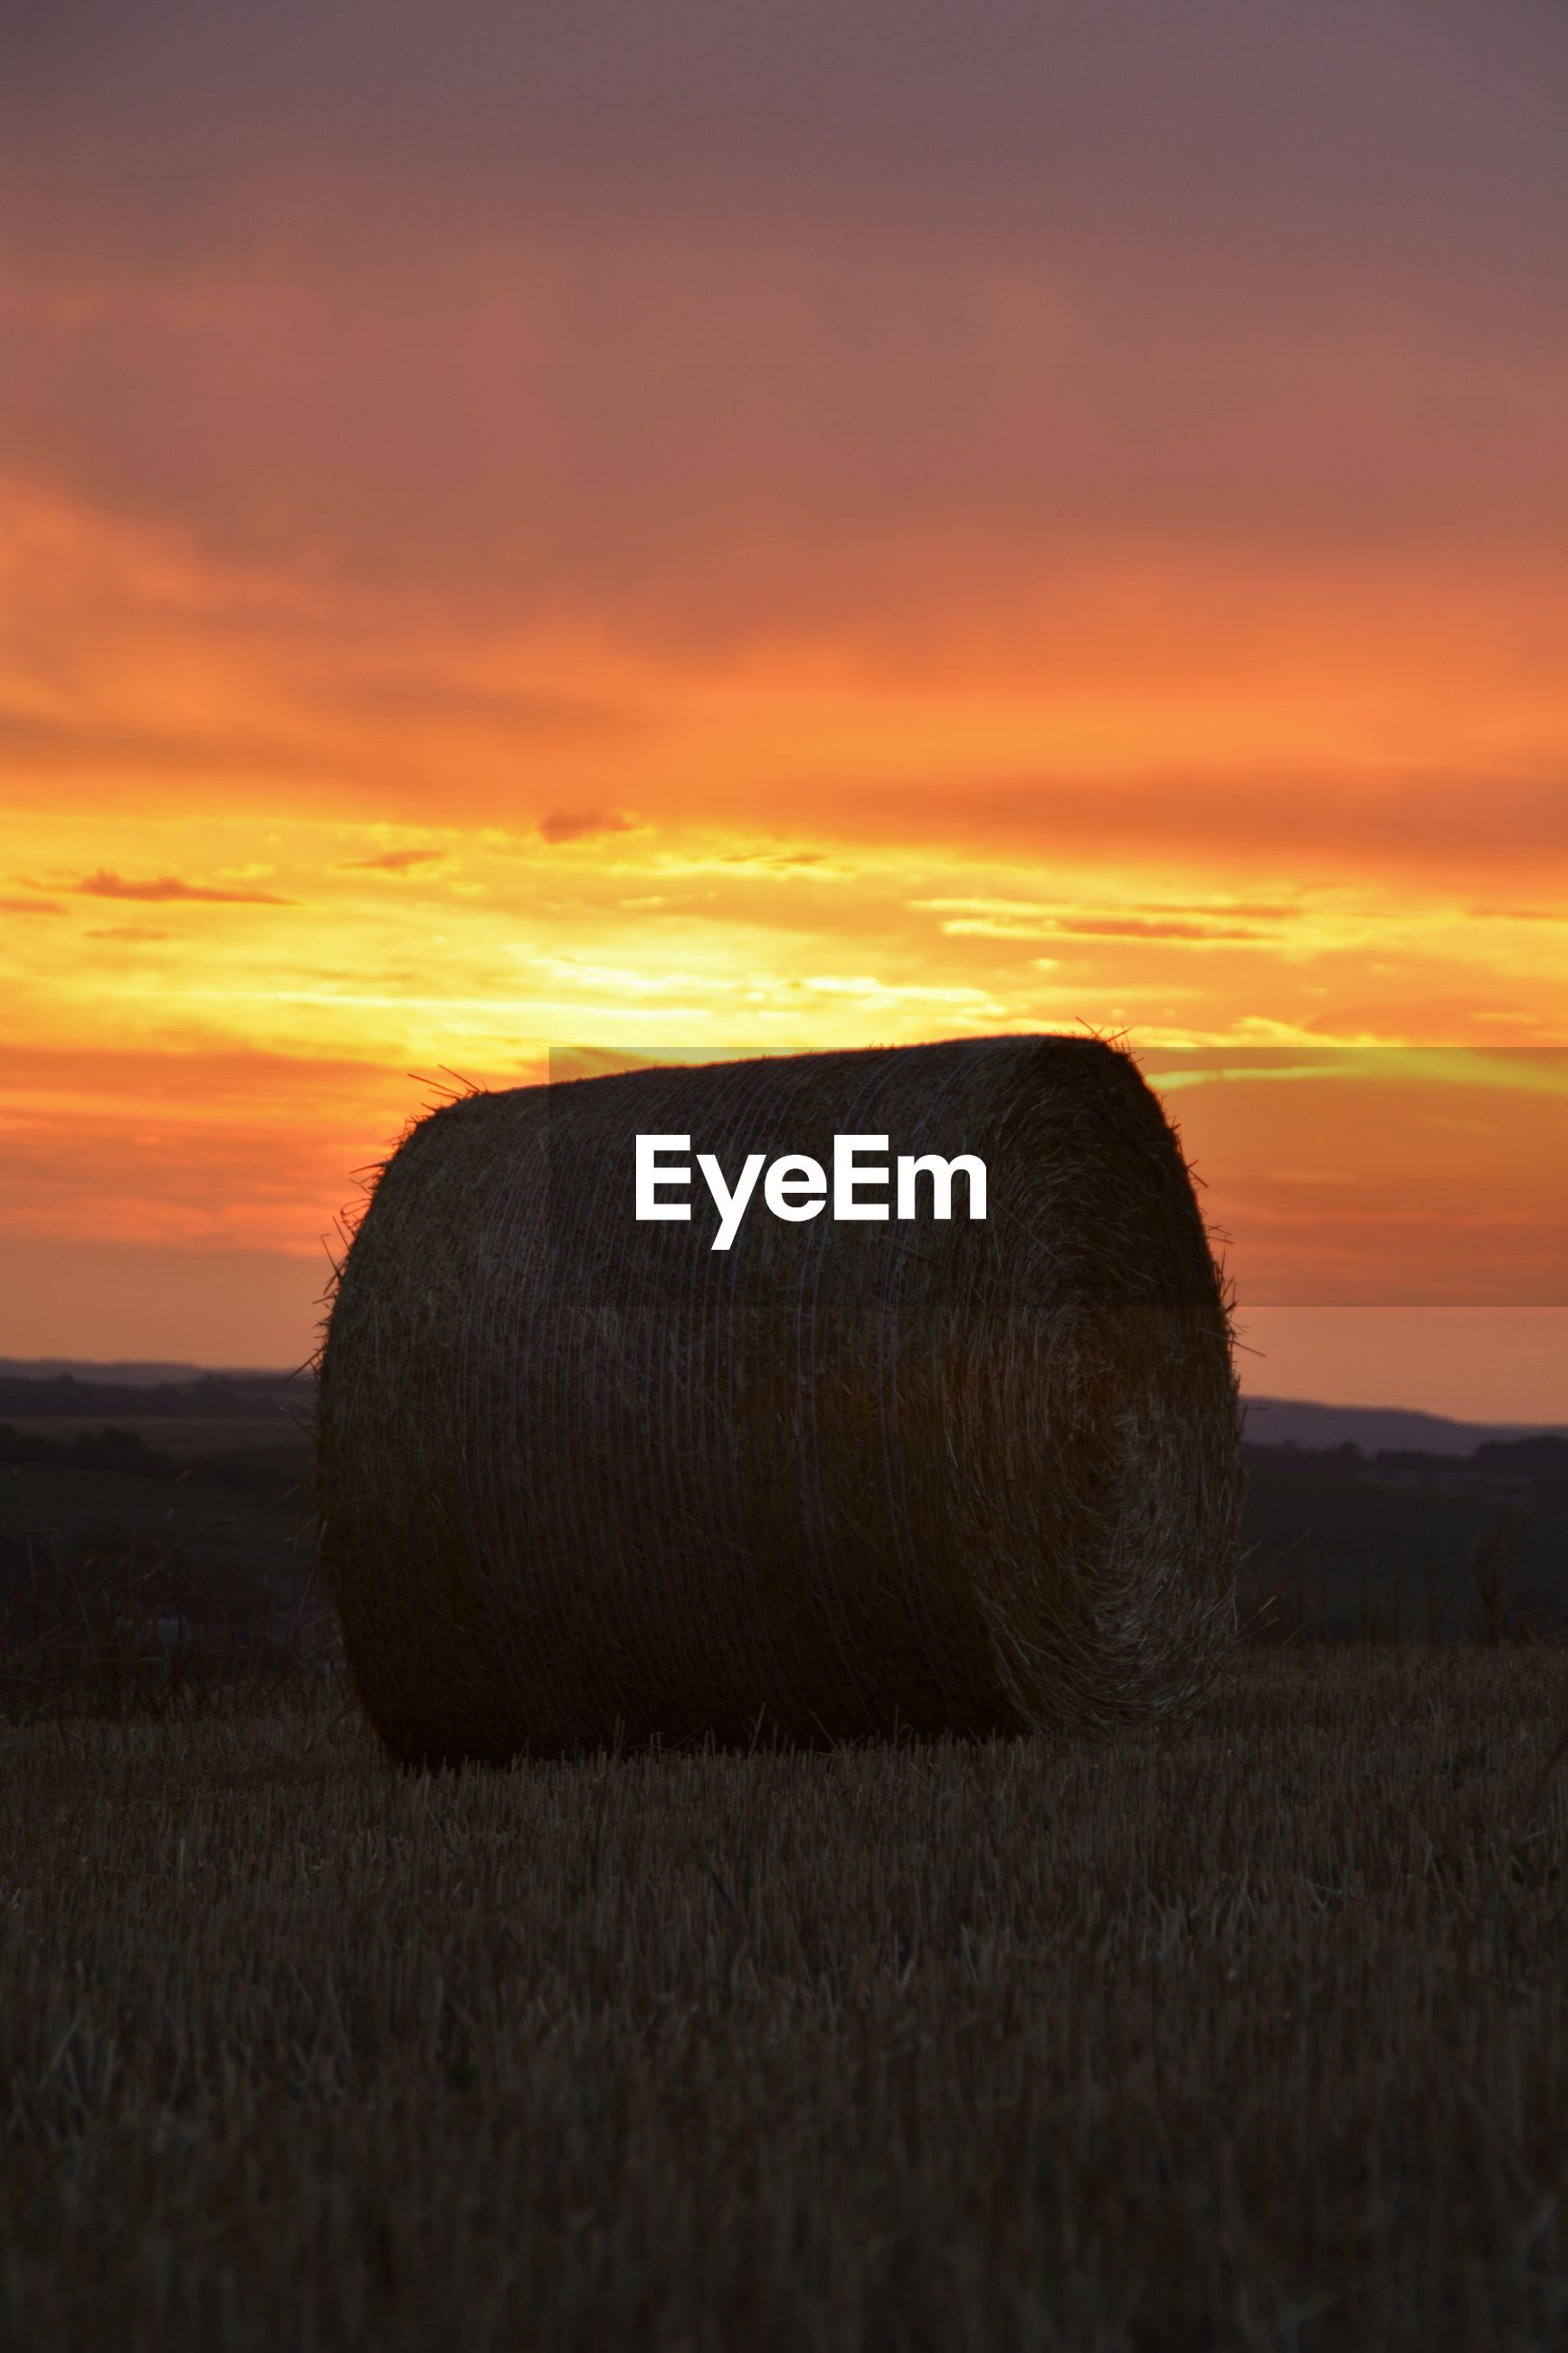 Hay bale on agricultural field against sky during sunset